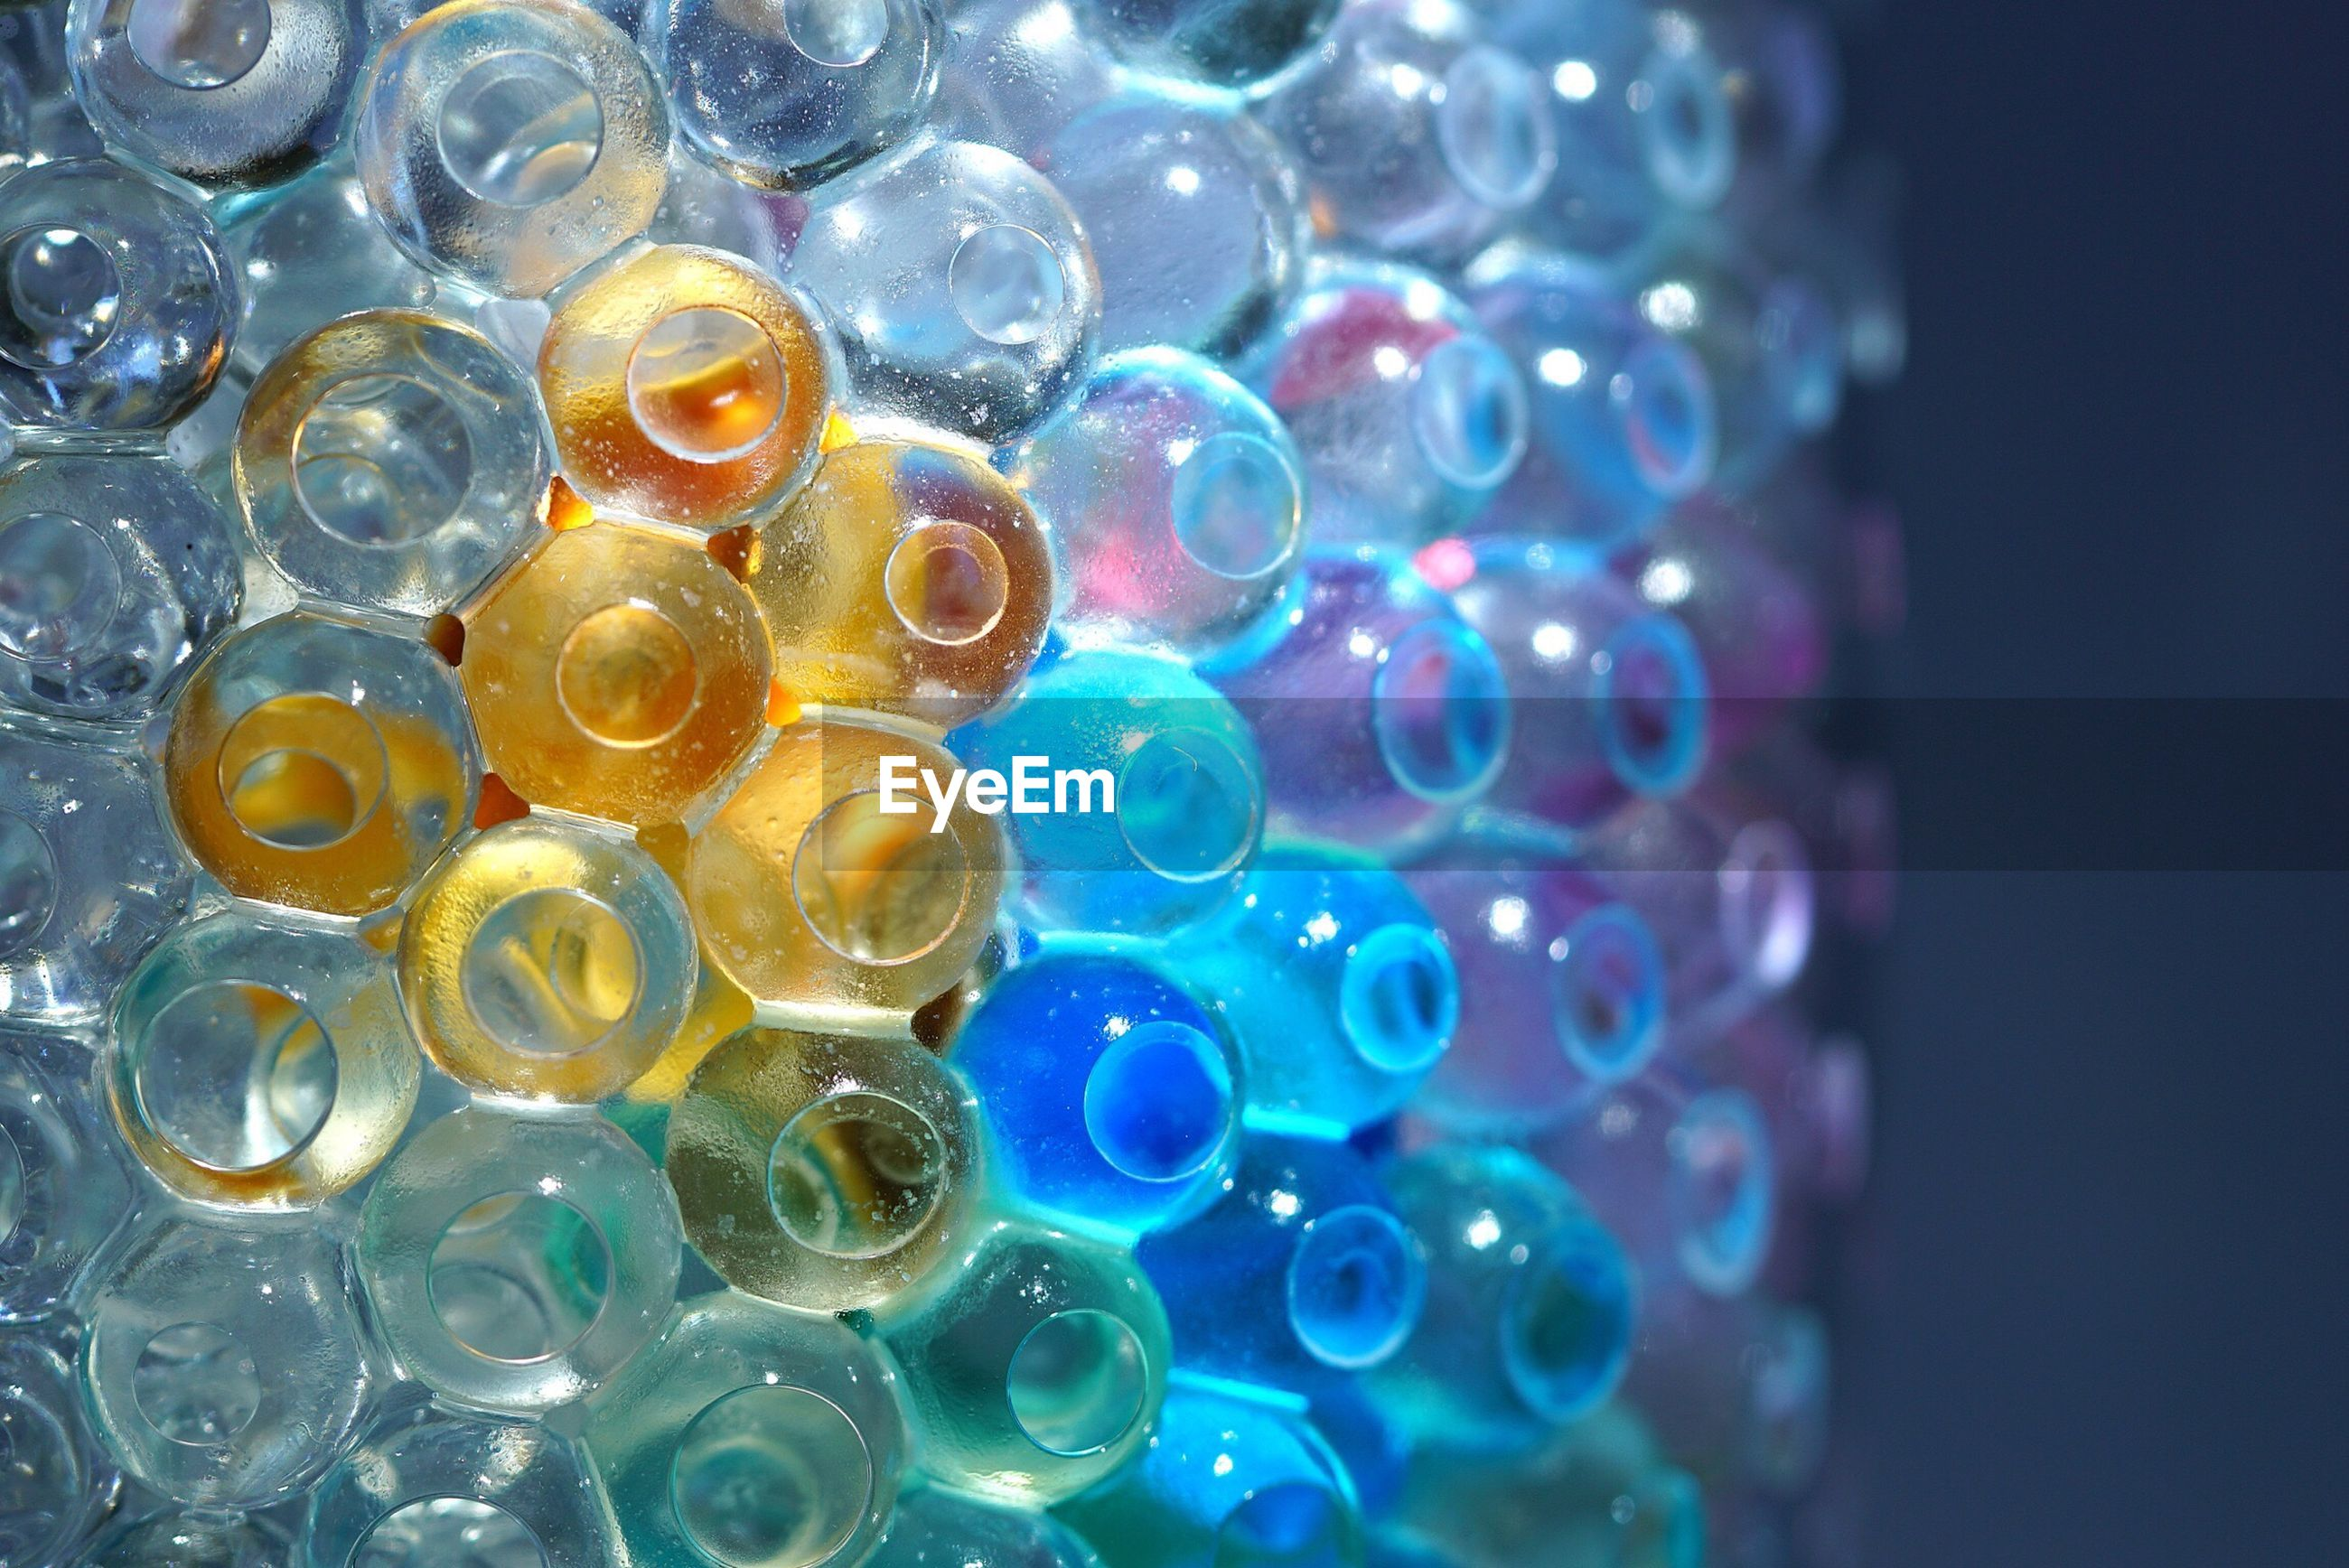 Close-up of water beads